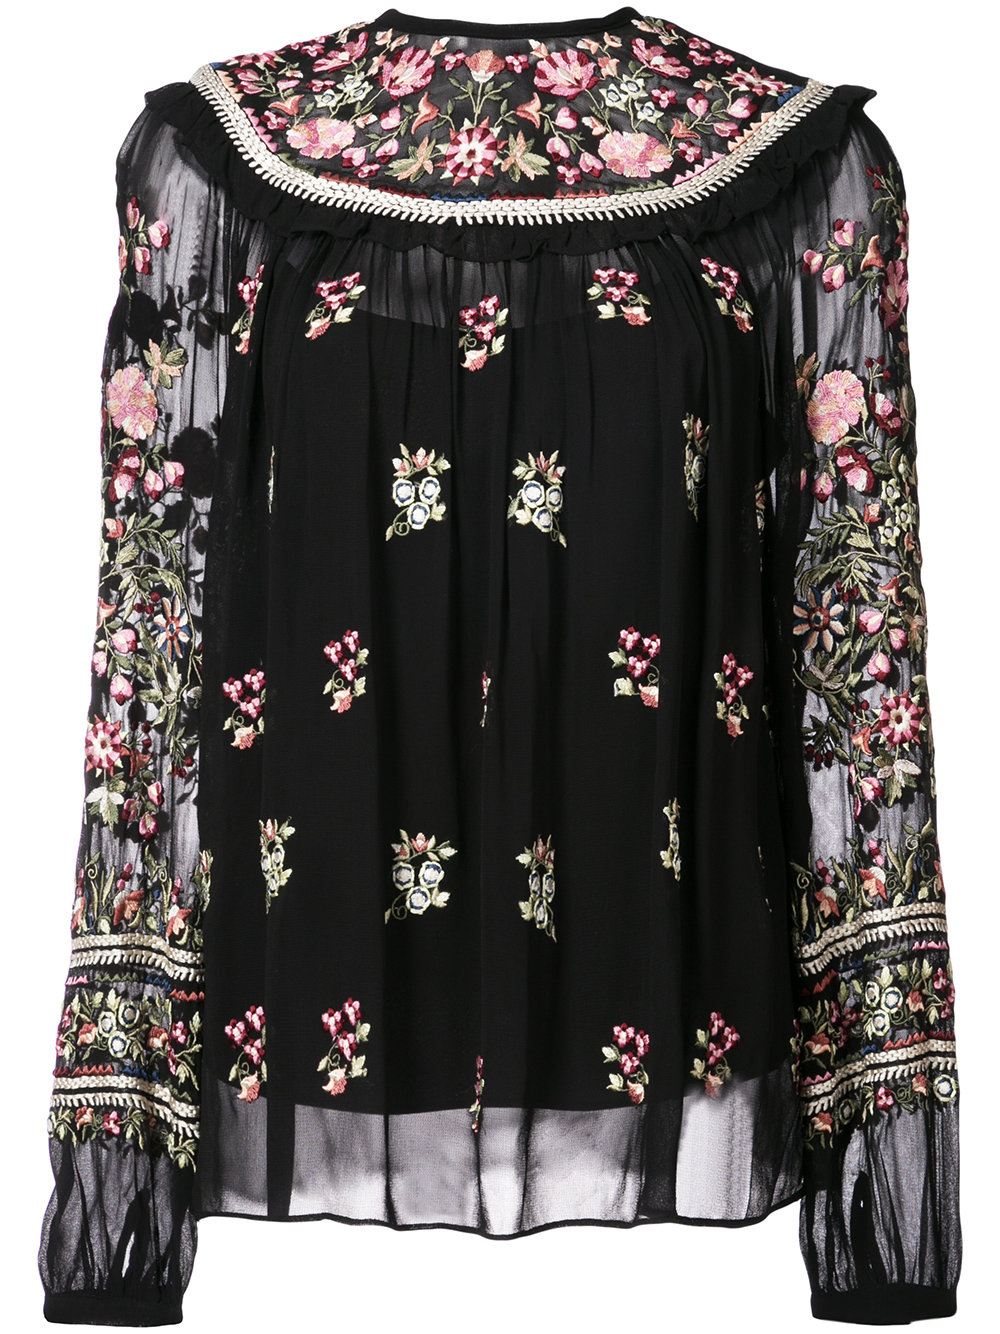 NEEDLE & THREAD blouse - $350